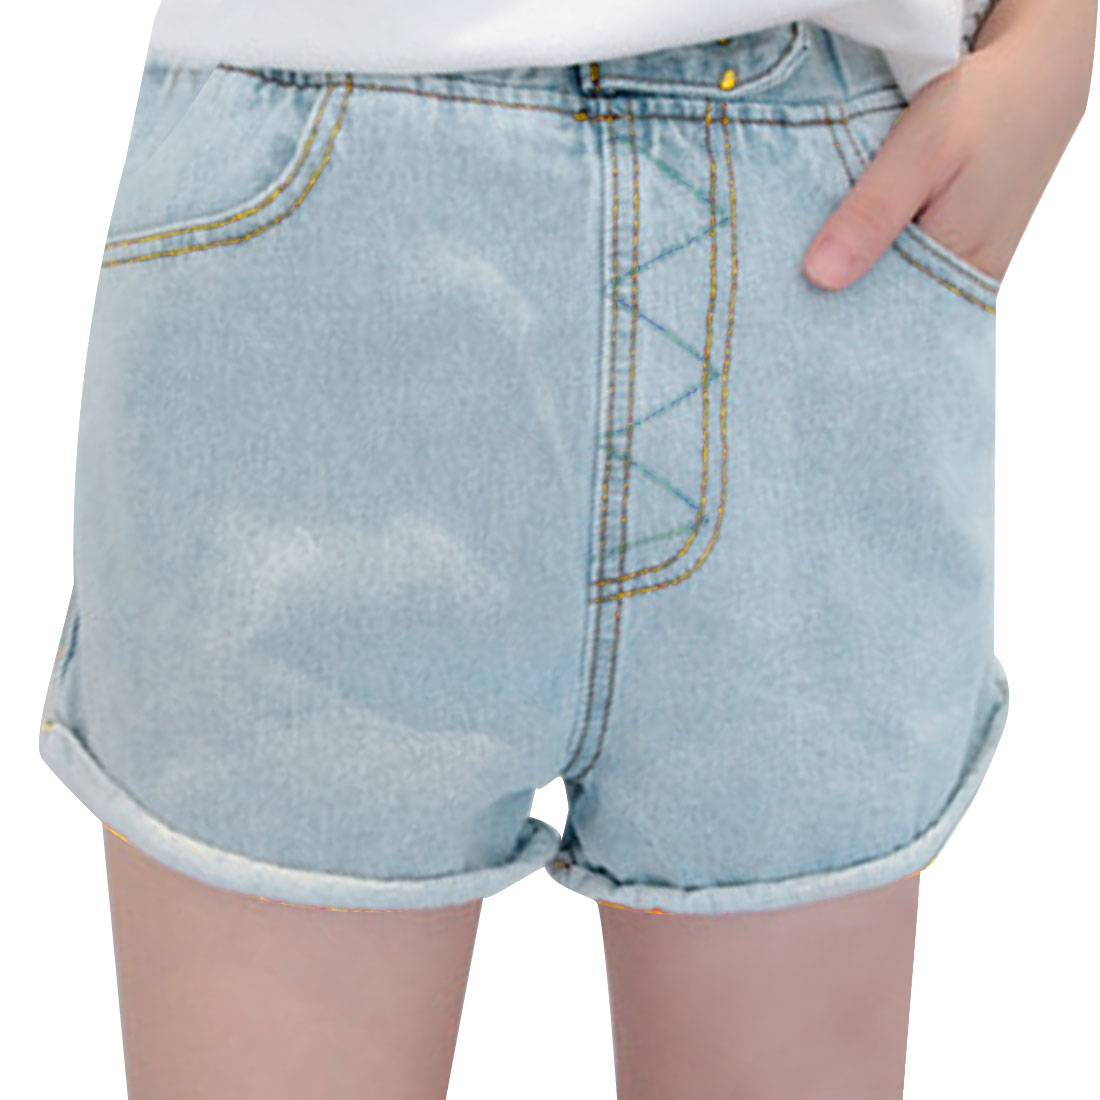 Women Roll-up Design Elastic Waist Light Blue Demin Shorts S